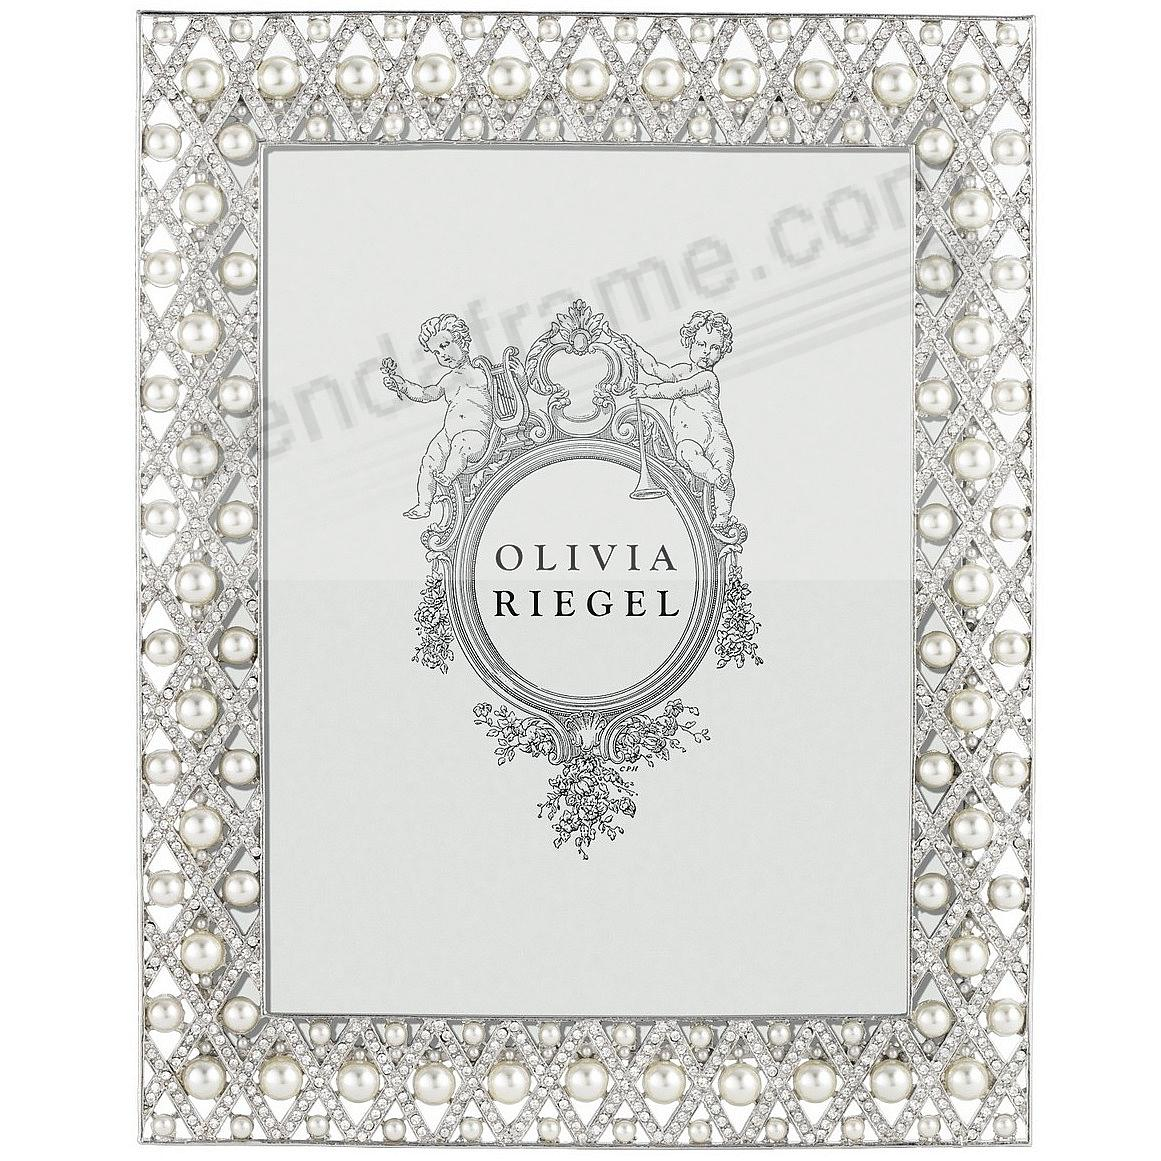 Picture frames photo albums personalized and engraved digital pegeen austrian perle crystal 8x10 frame by olivia riegelreg jeuxipadfo Image collections